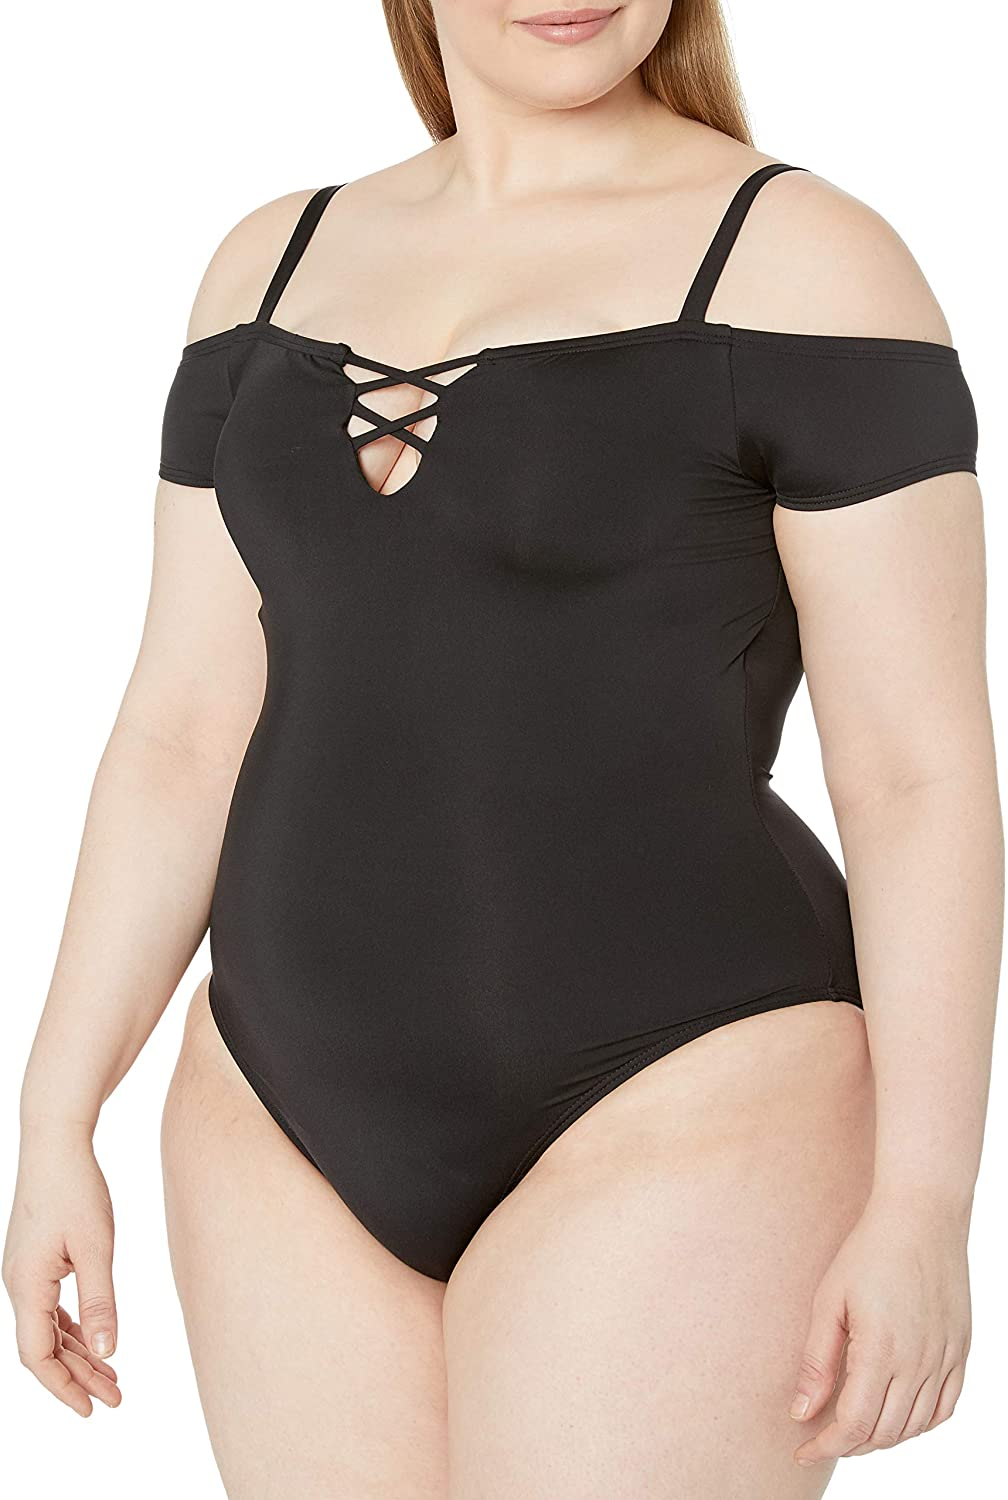 Kenneth Cole REACTION Womens Plus-Size Garden Groove Off The Shoulder One Piece Swimsuit